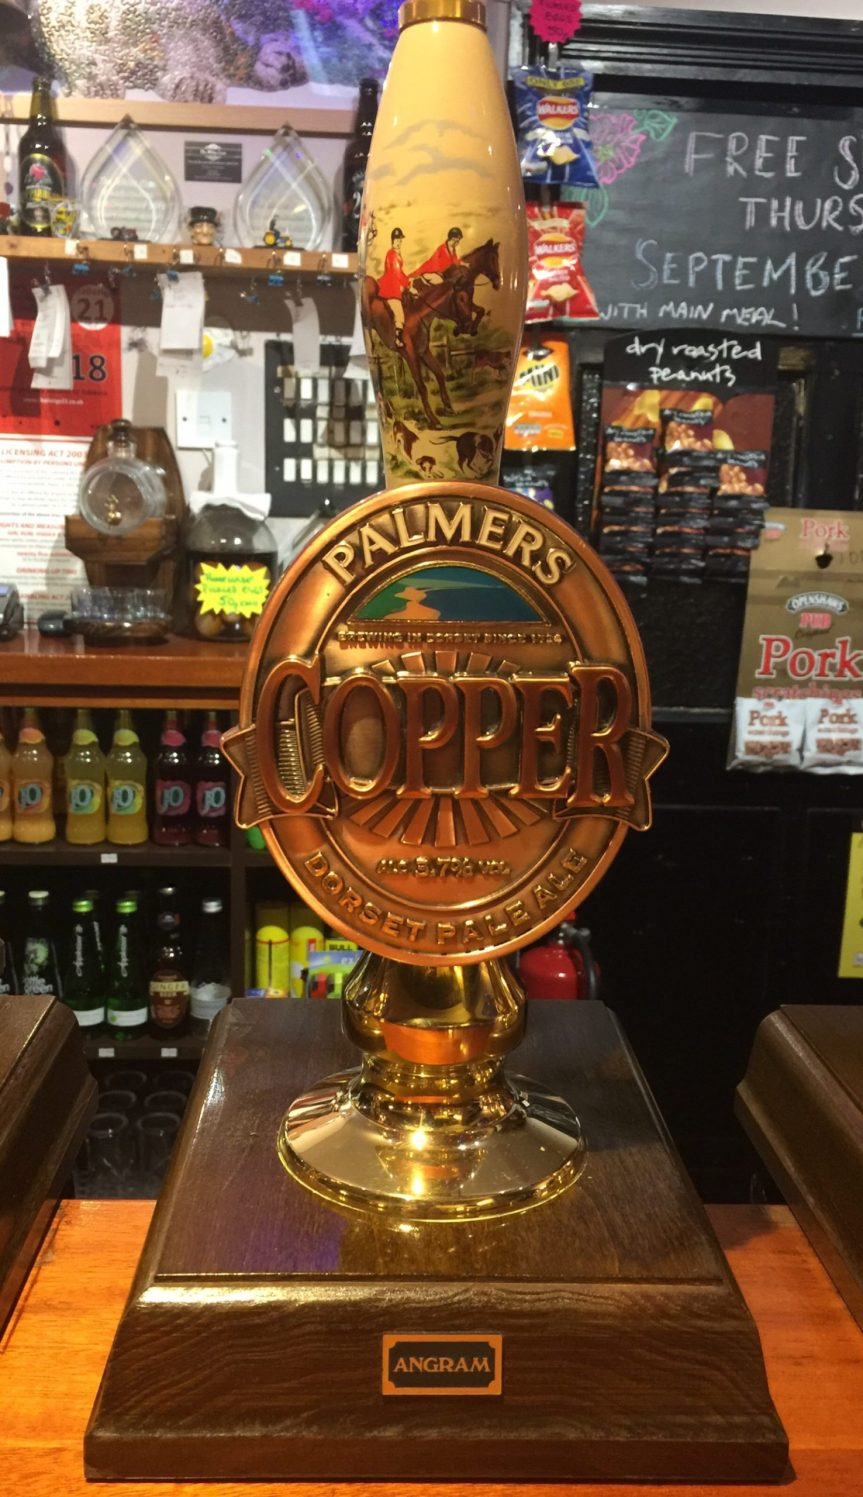 Palmers Copper Ale is Back at The White Lion